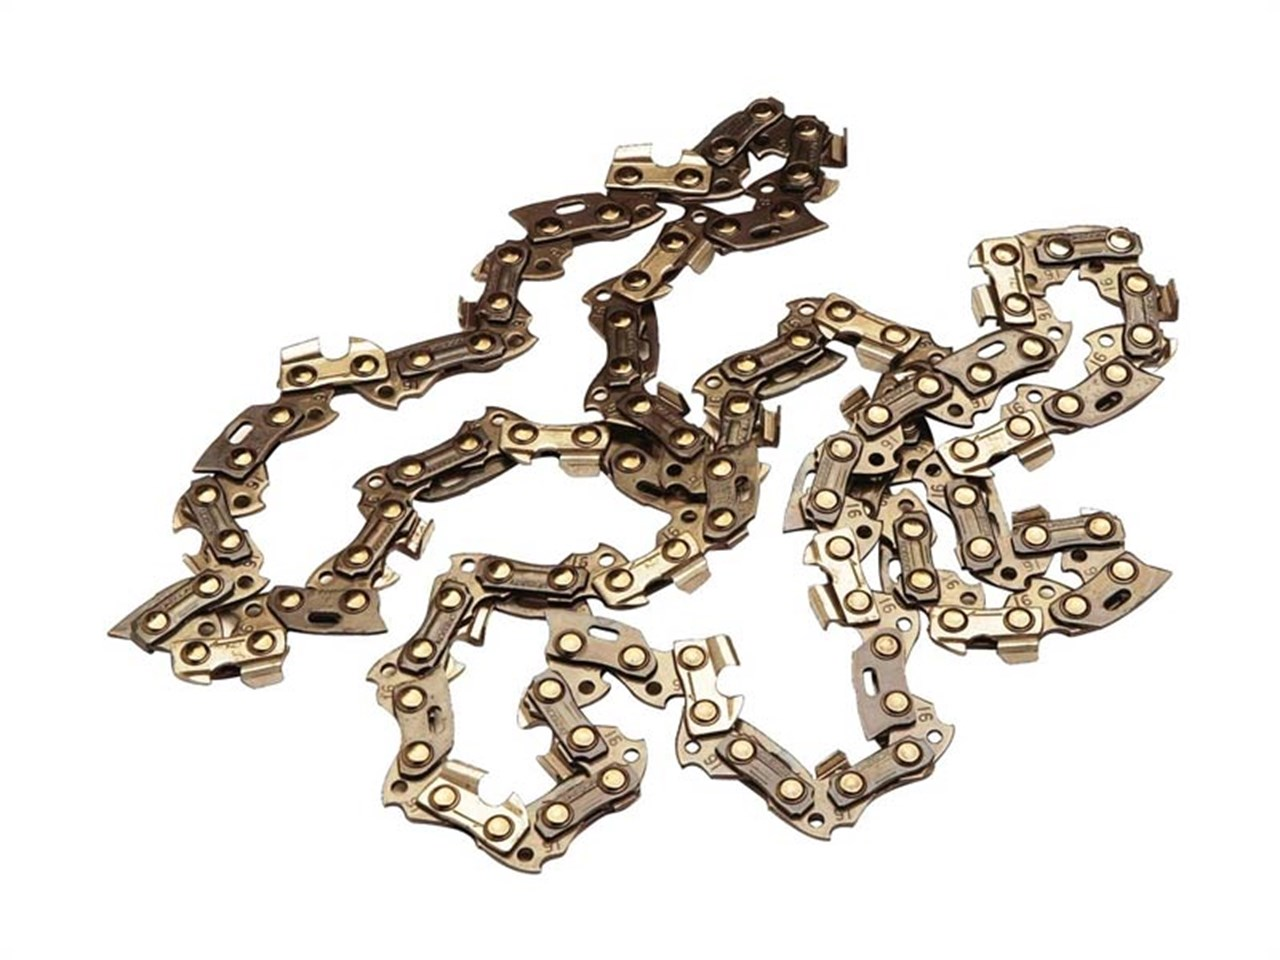 Ryobi rybcsa044 csa 044 14in replacement chain for petrol chainsaws greentooth Choice Image